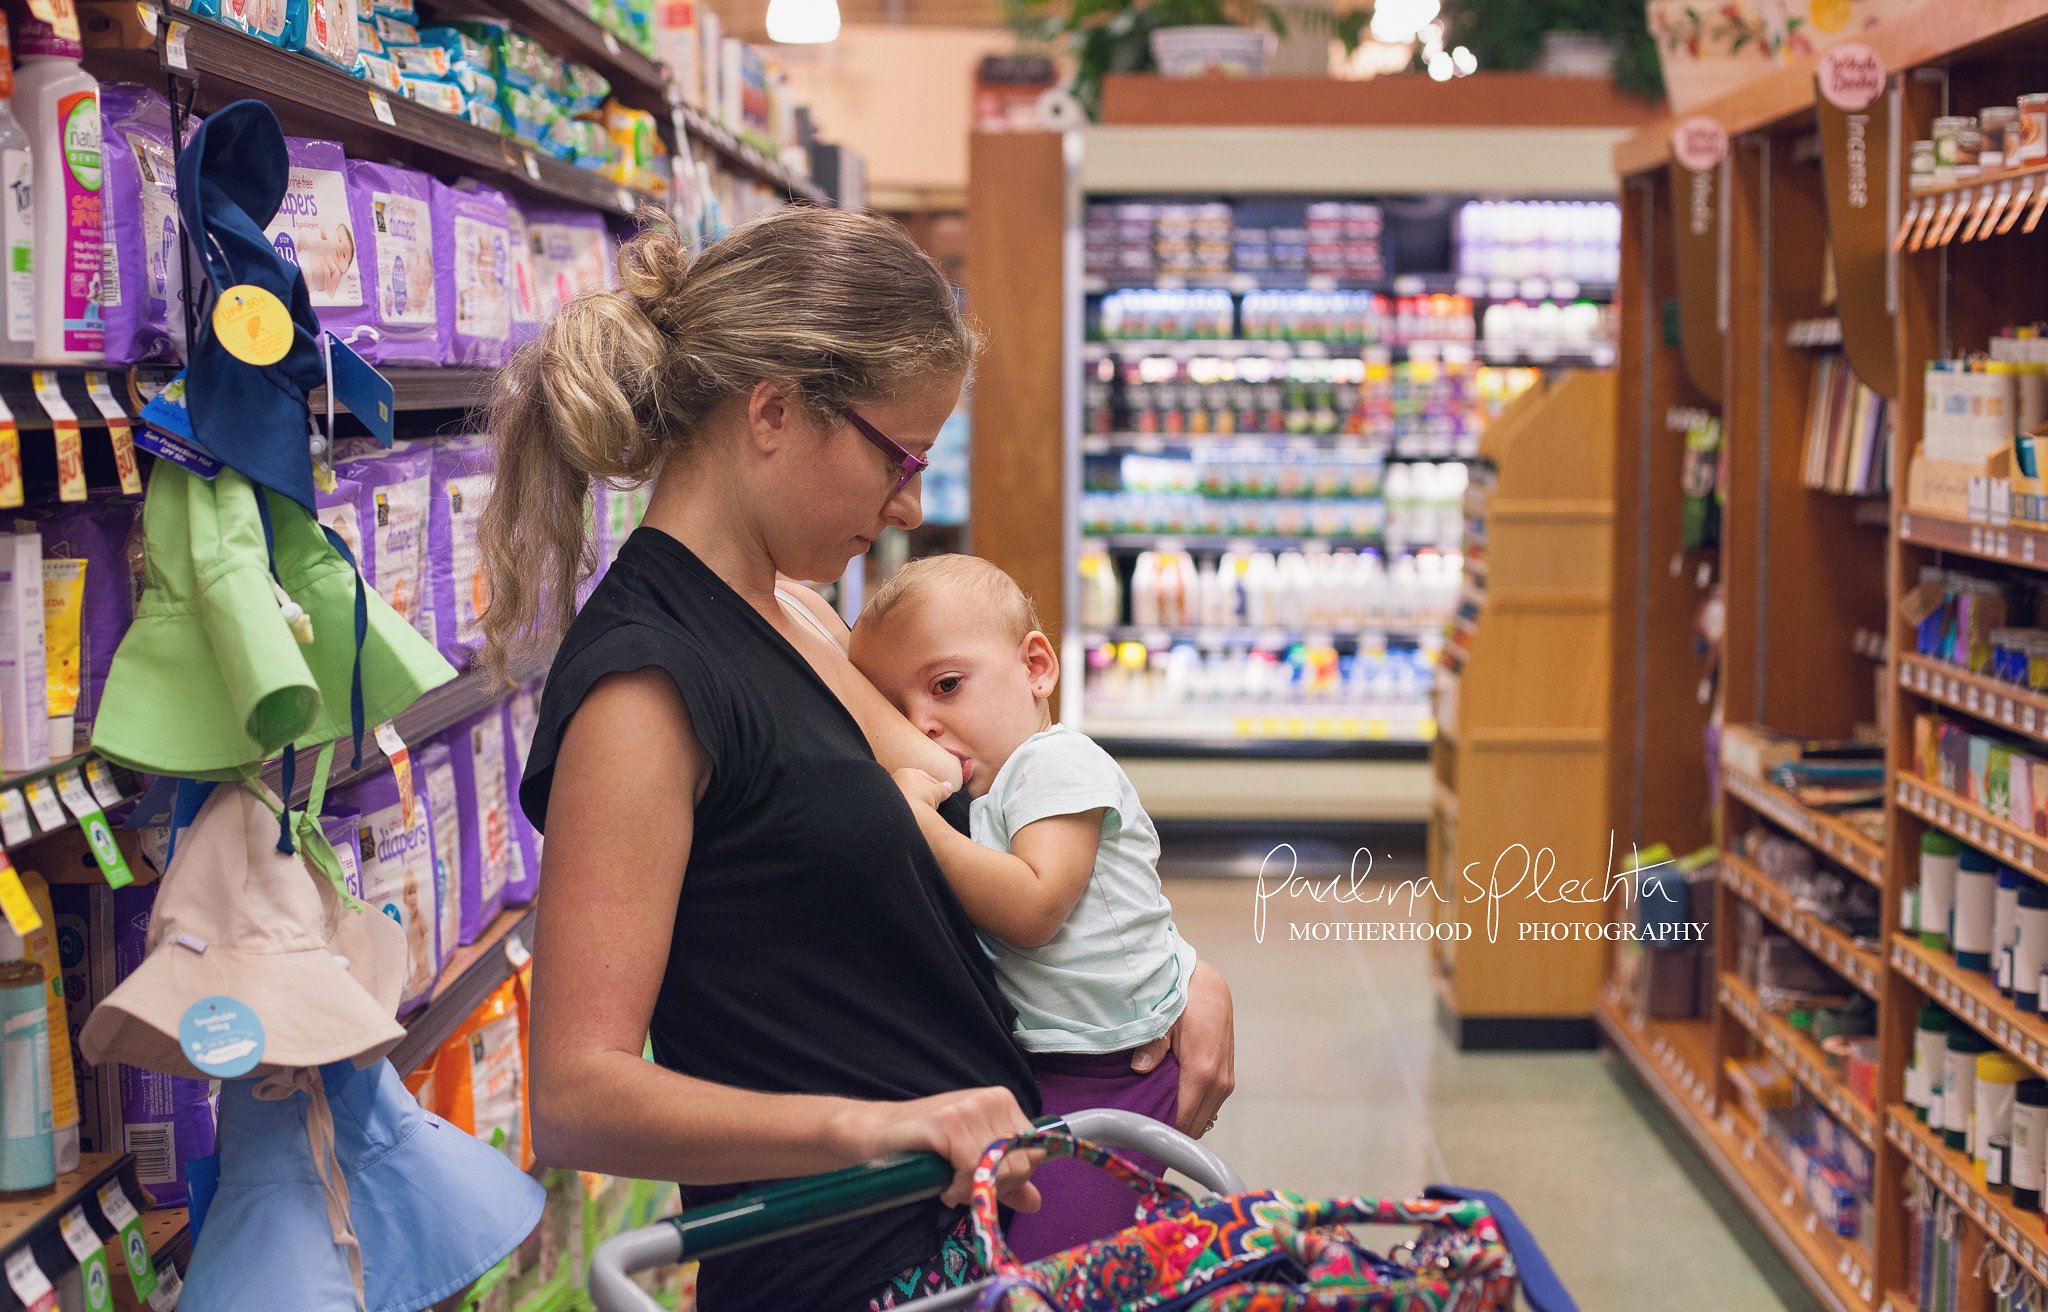 10 Steps to Breastfeeding In Public Without Fear | HuffPost